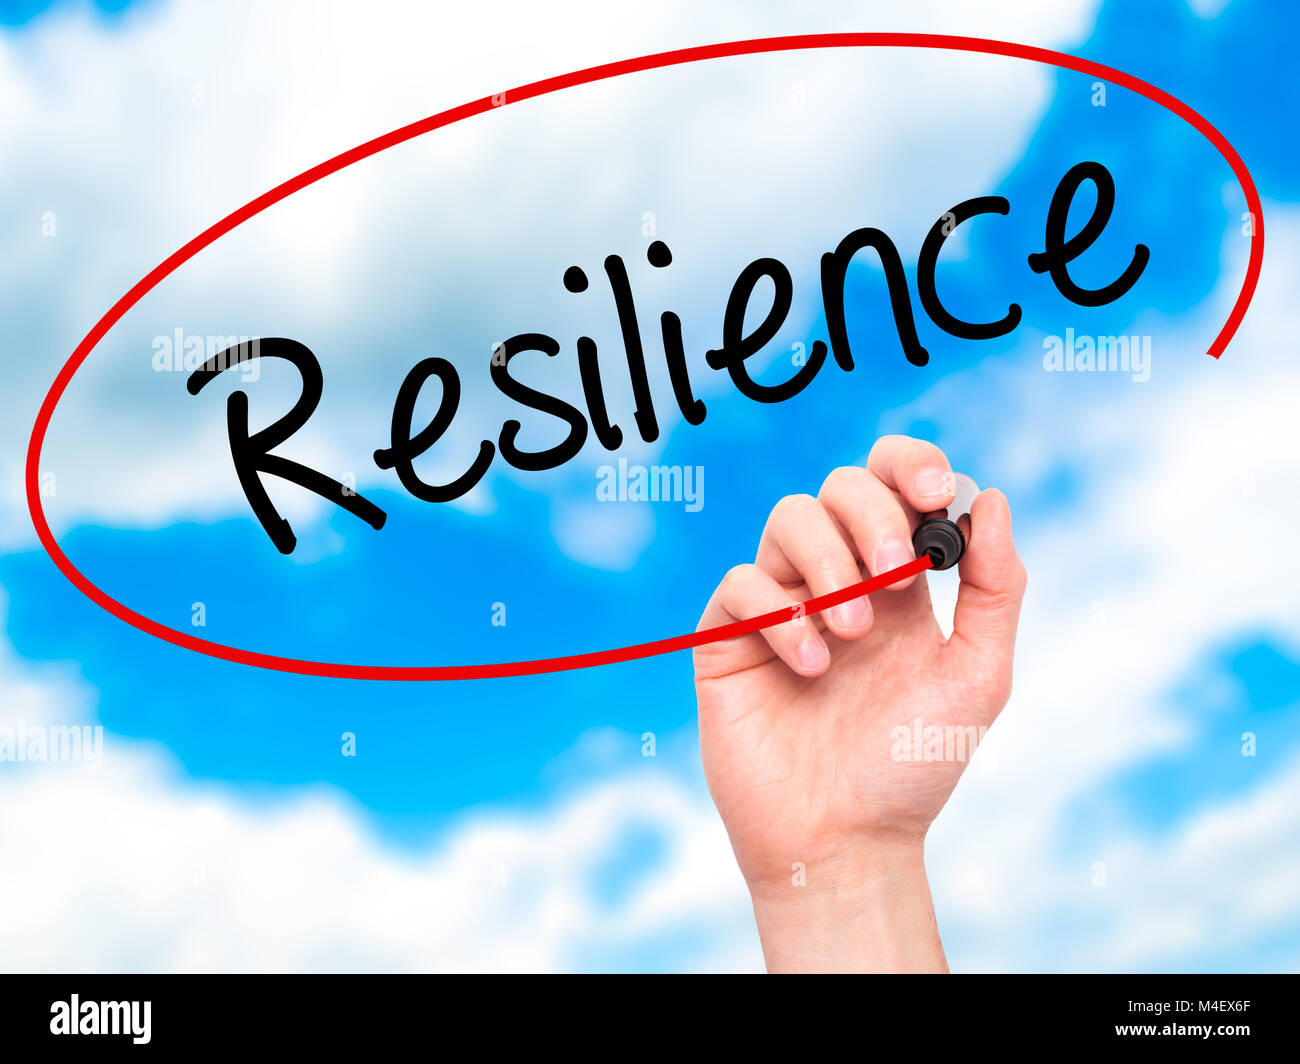 Man Hand writing Resilience with black marker on visual screen - Stock Image